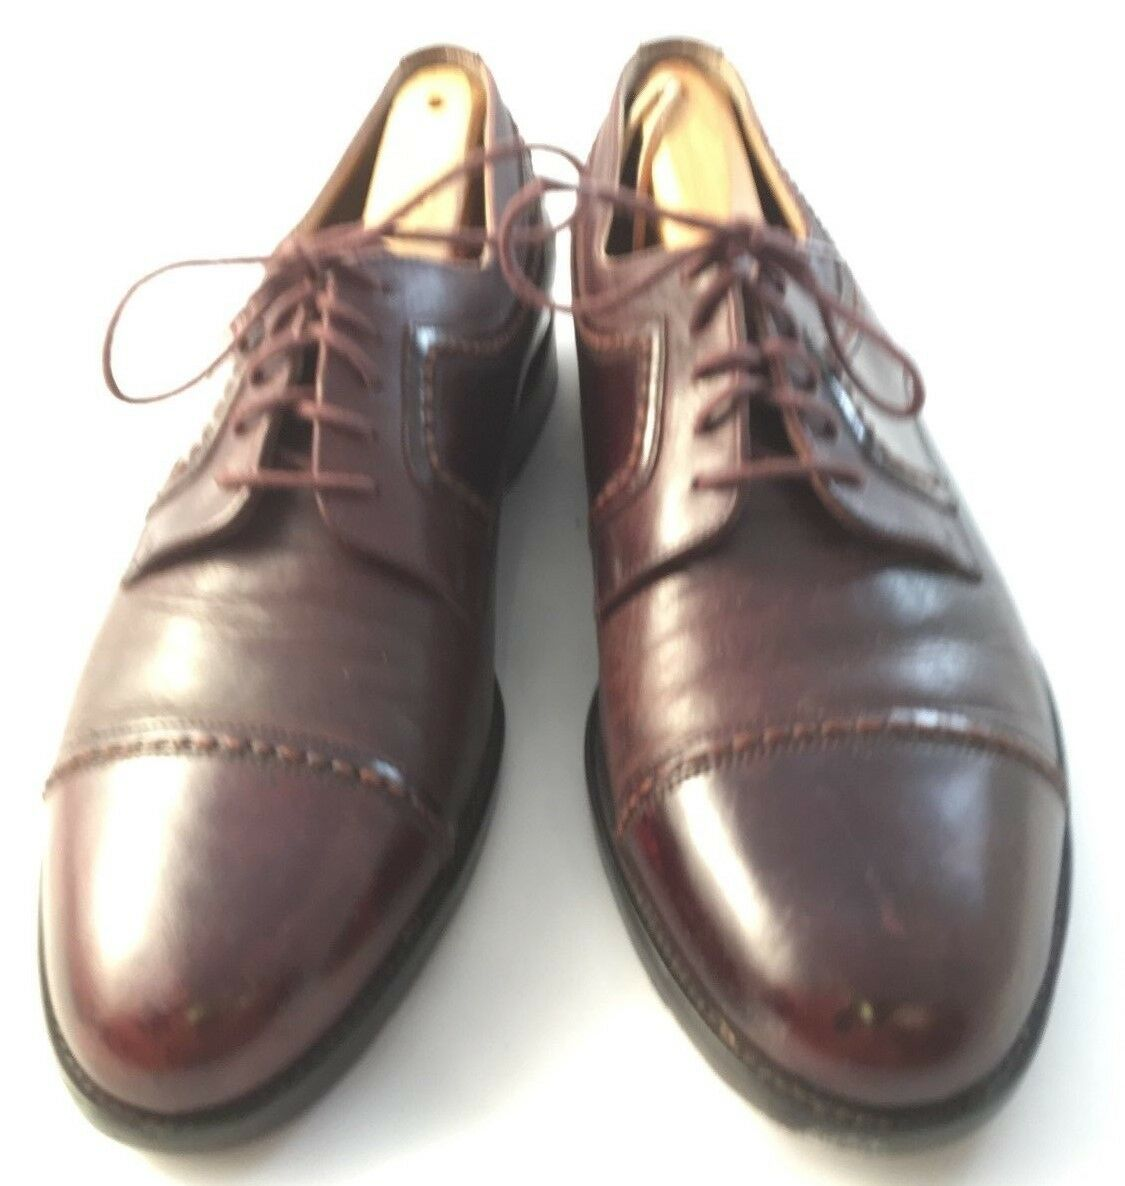 Johnston & Murphy Mens size 9.5 M Brown Leather Cap Toe Oxford Dress shoes 7007